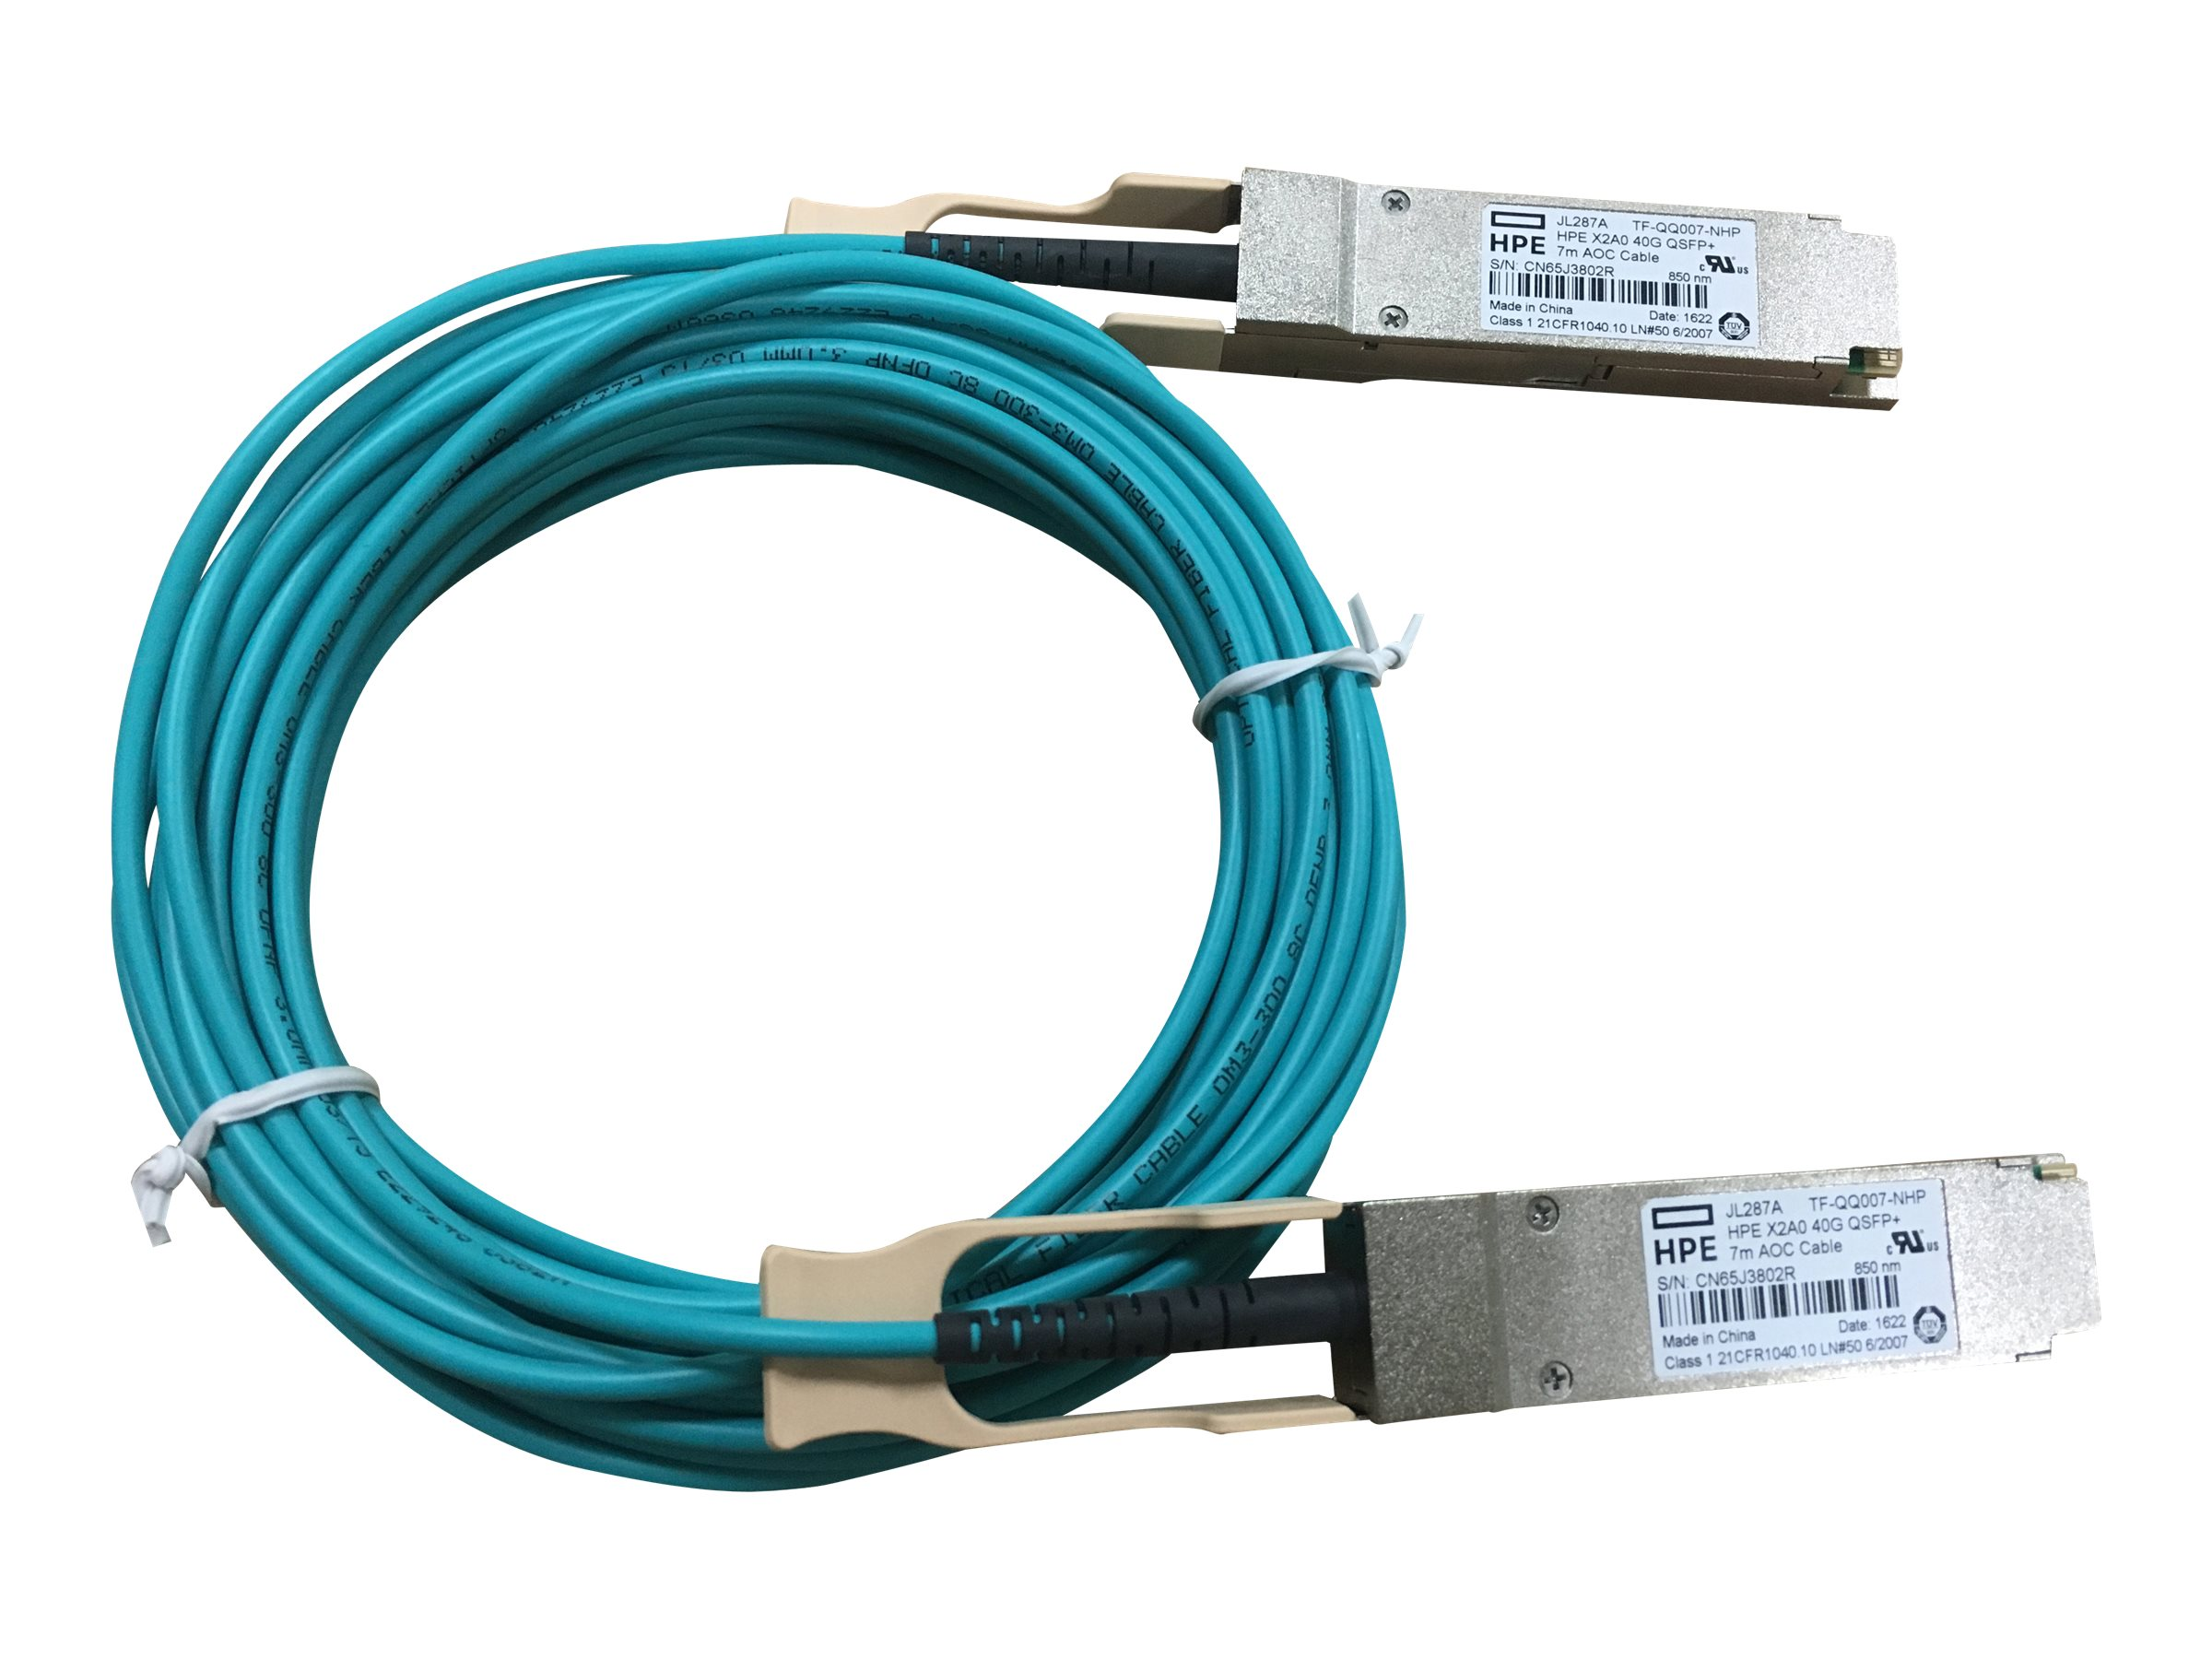 HPE 40G QSFP+ to QSFP+ Active Optical Cable, 7m